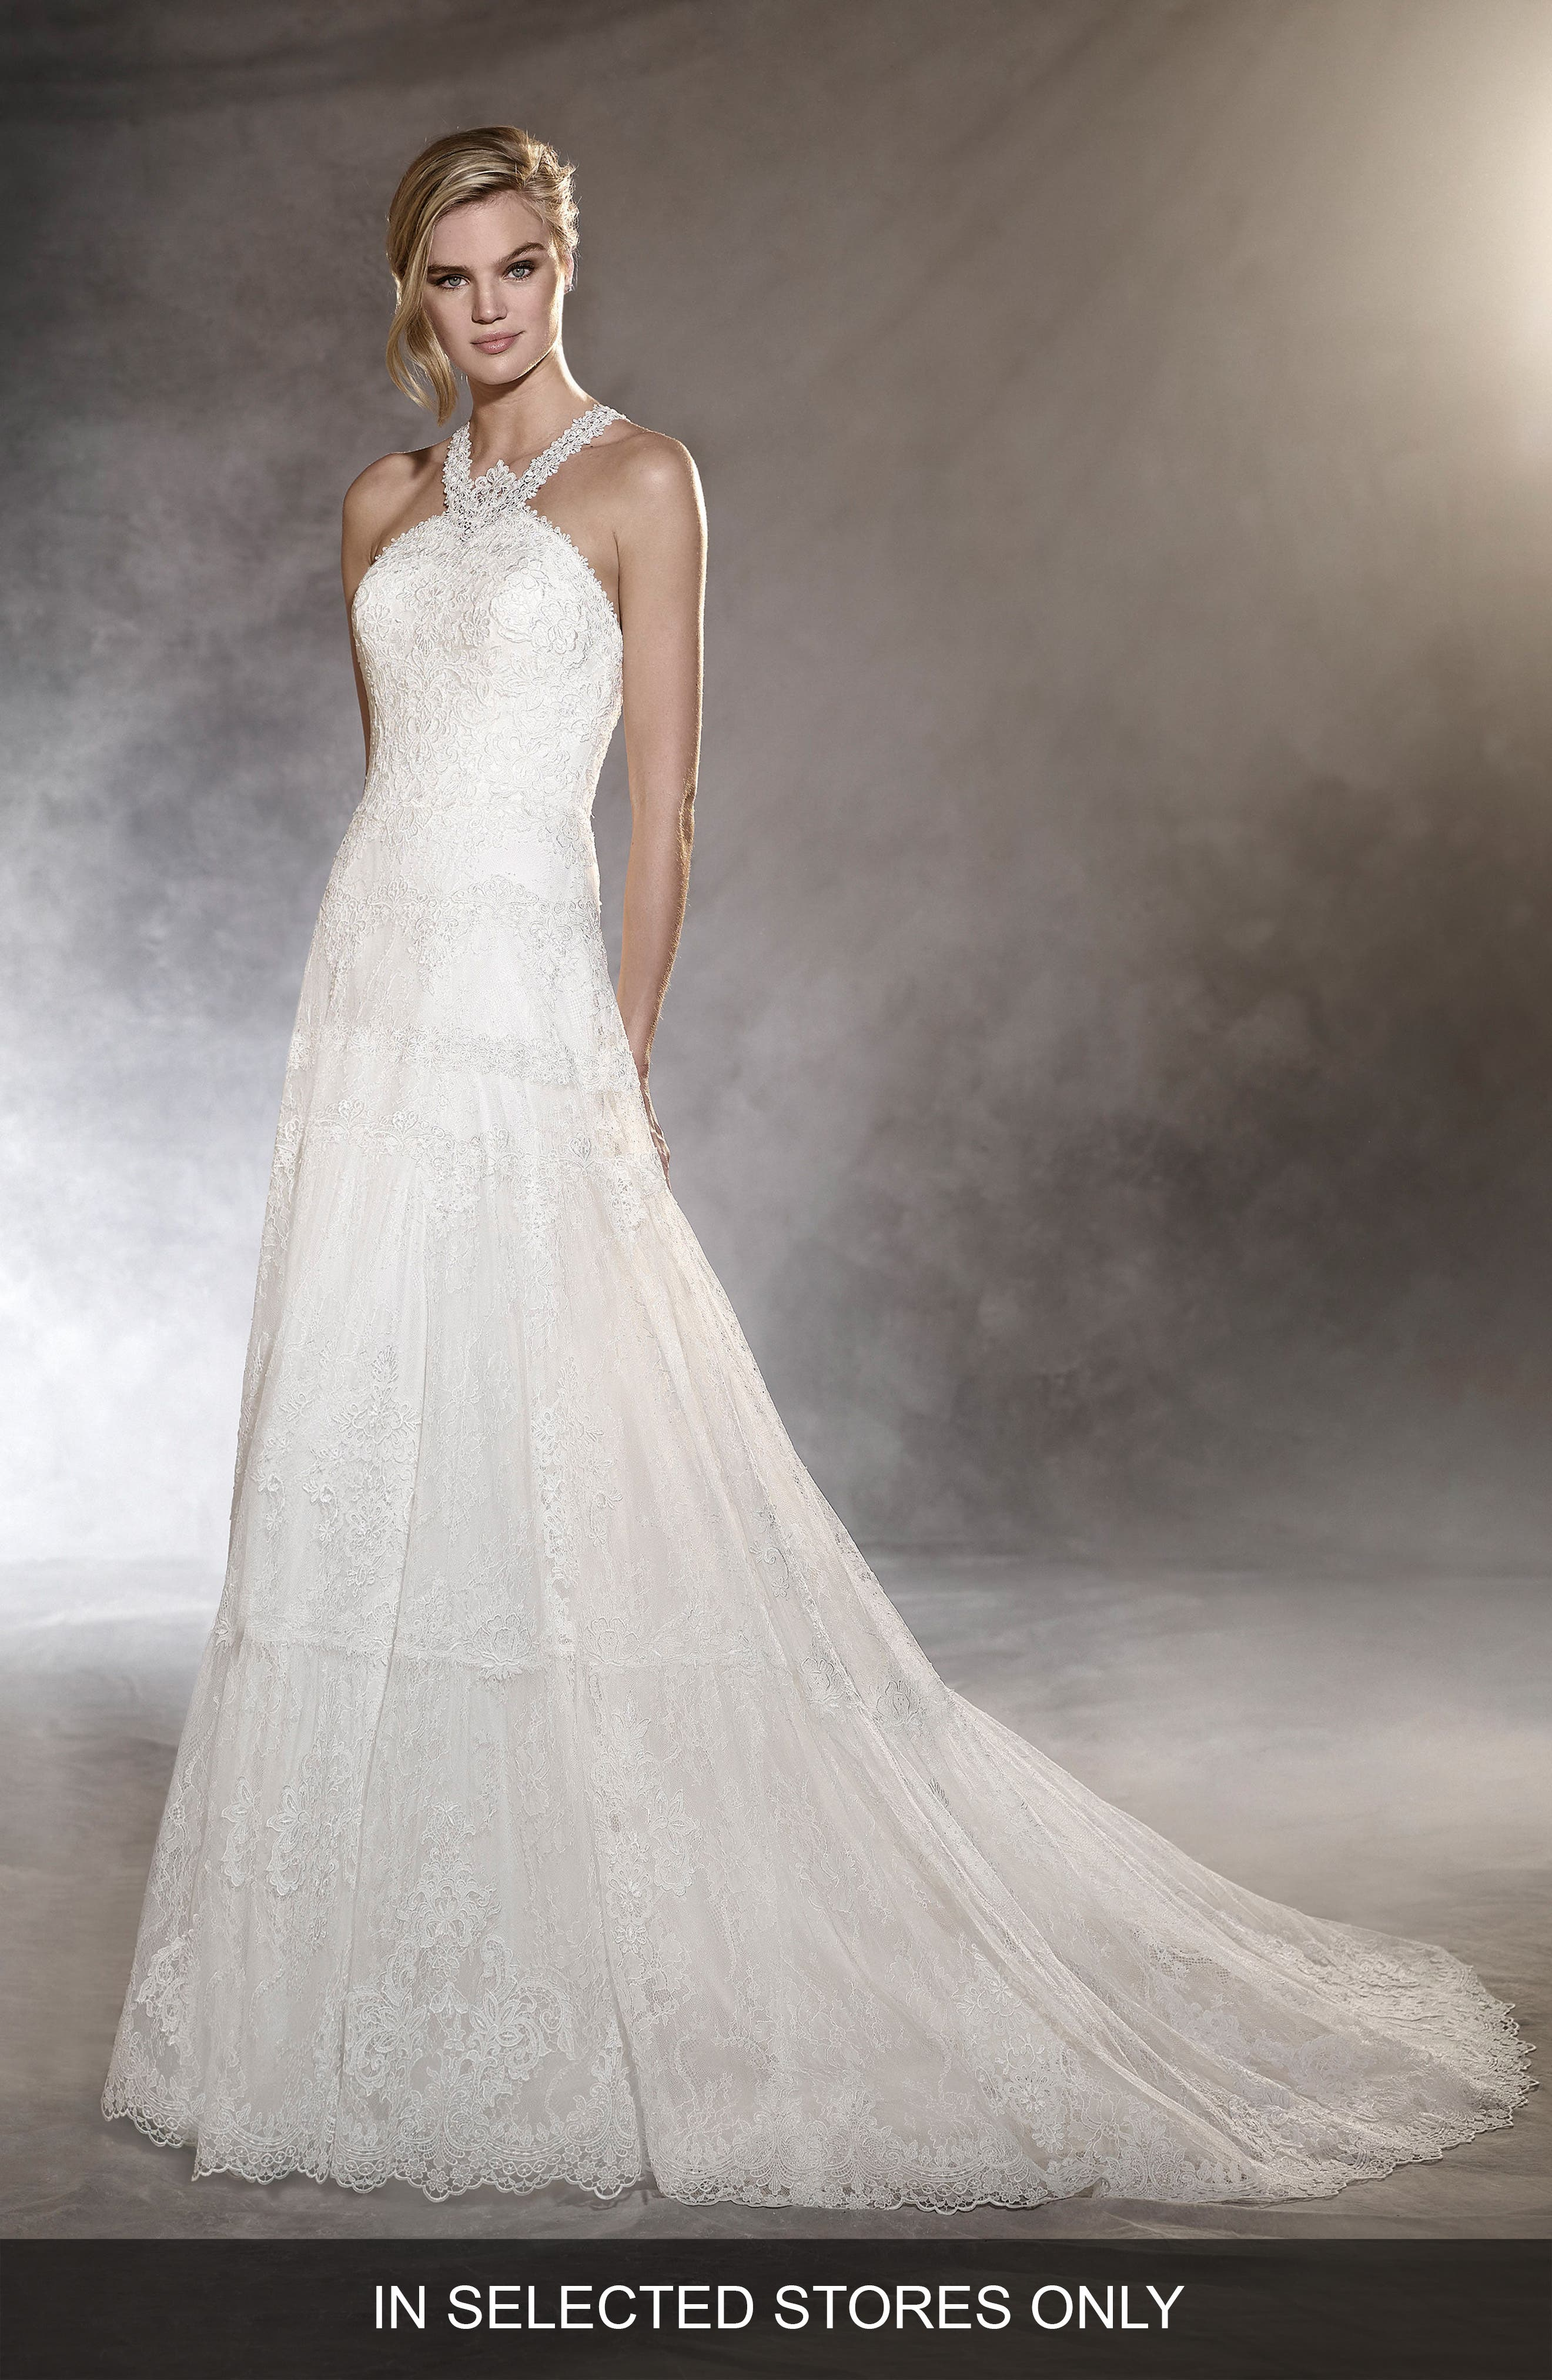 Ospel Halter Lace Gown,                         Main,                         color, Off White